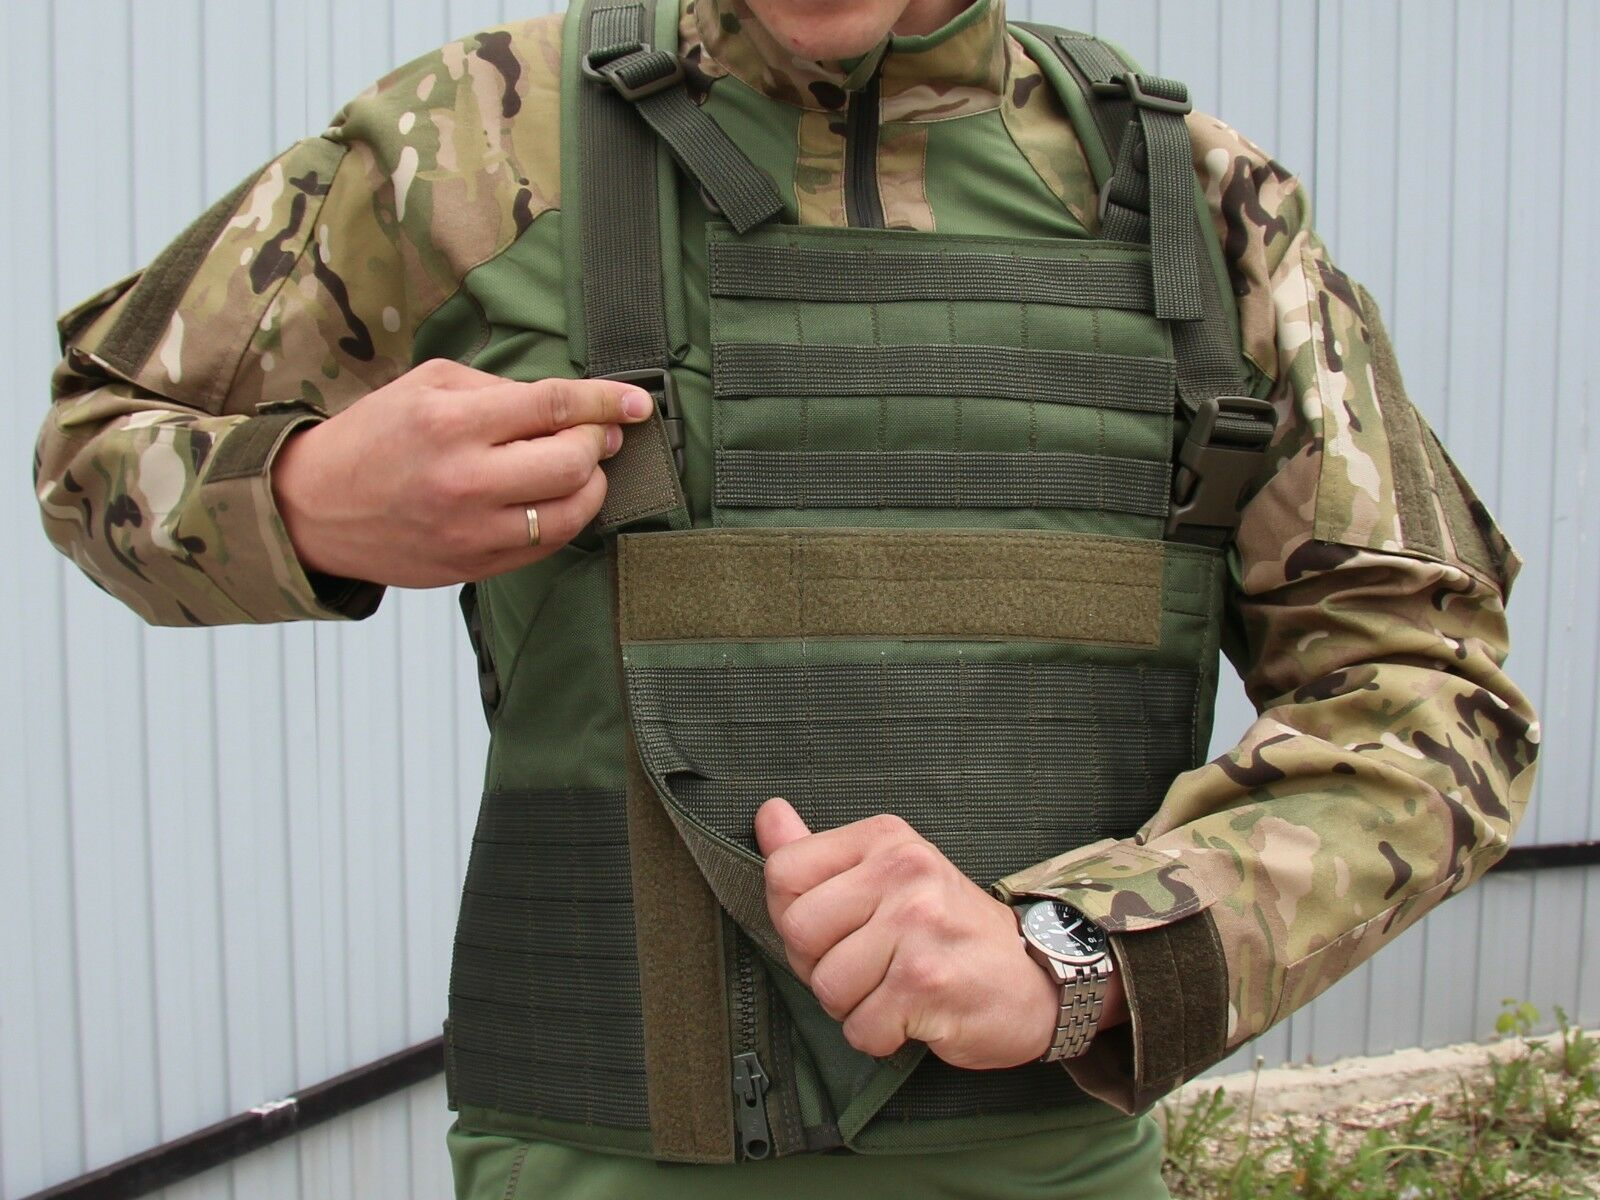 Chest Rig MOLLE Multifunctional in Olive color by Stich Profi